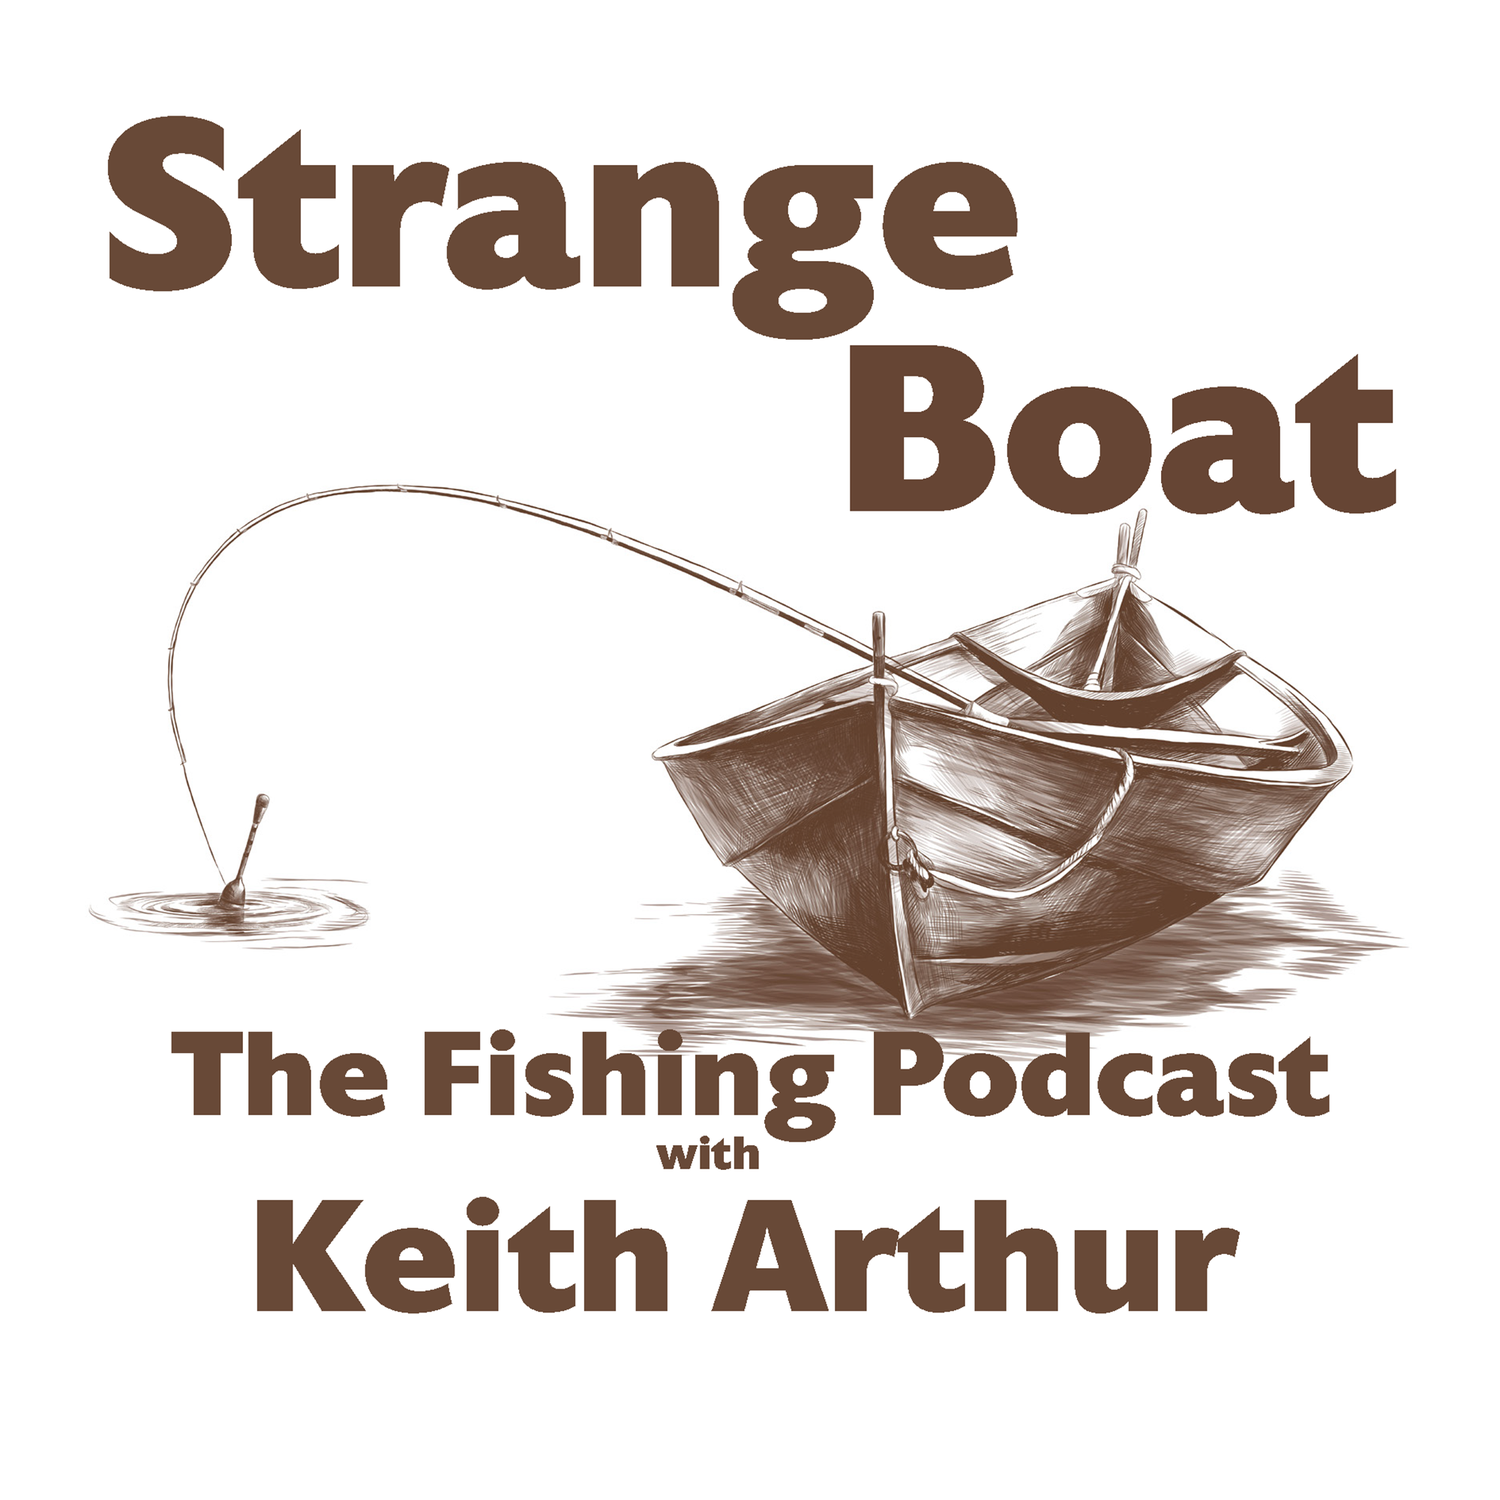 Strange Boat - The Fishing Podcast 20: The Welsh Wizard - Fly Fishing superstar Hywel Morgan with Keith on The Strange Boat